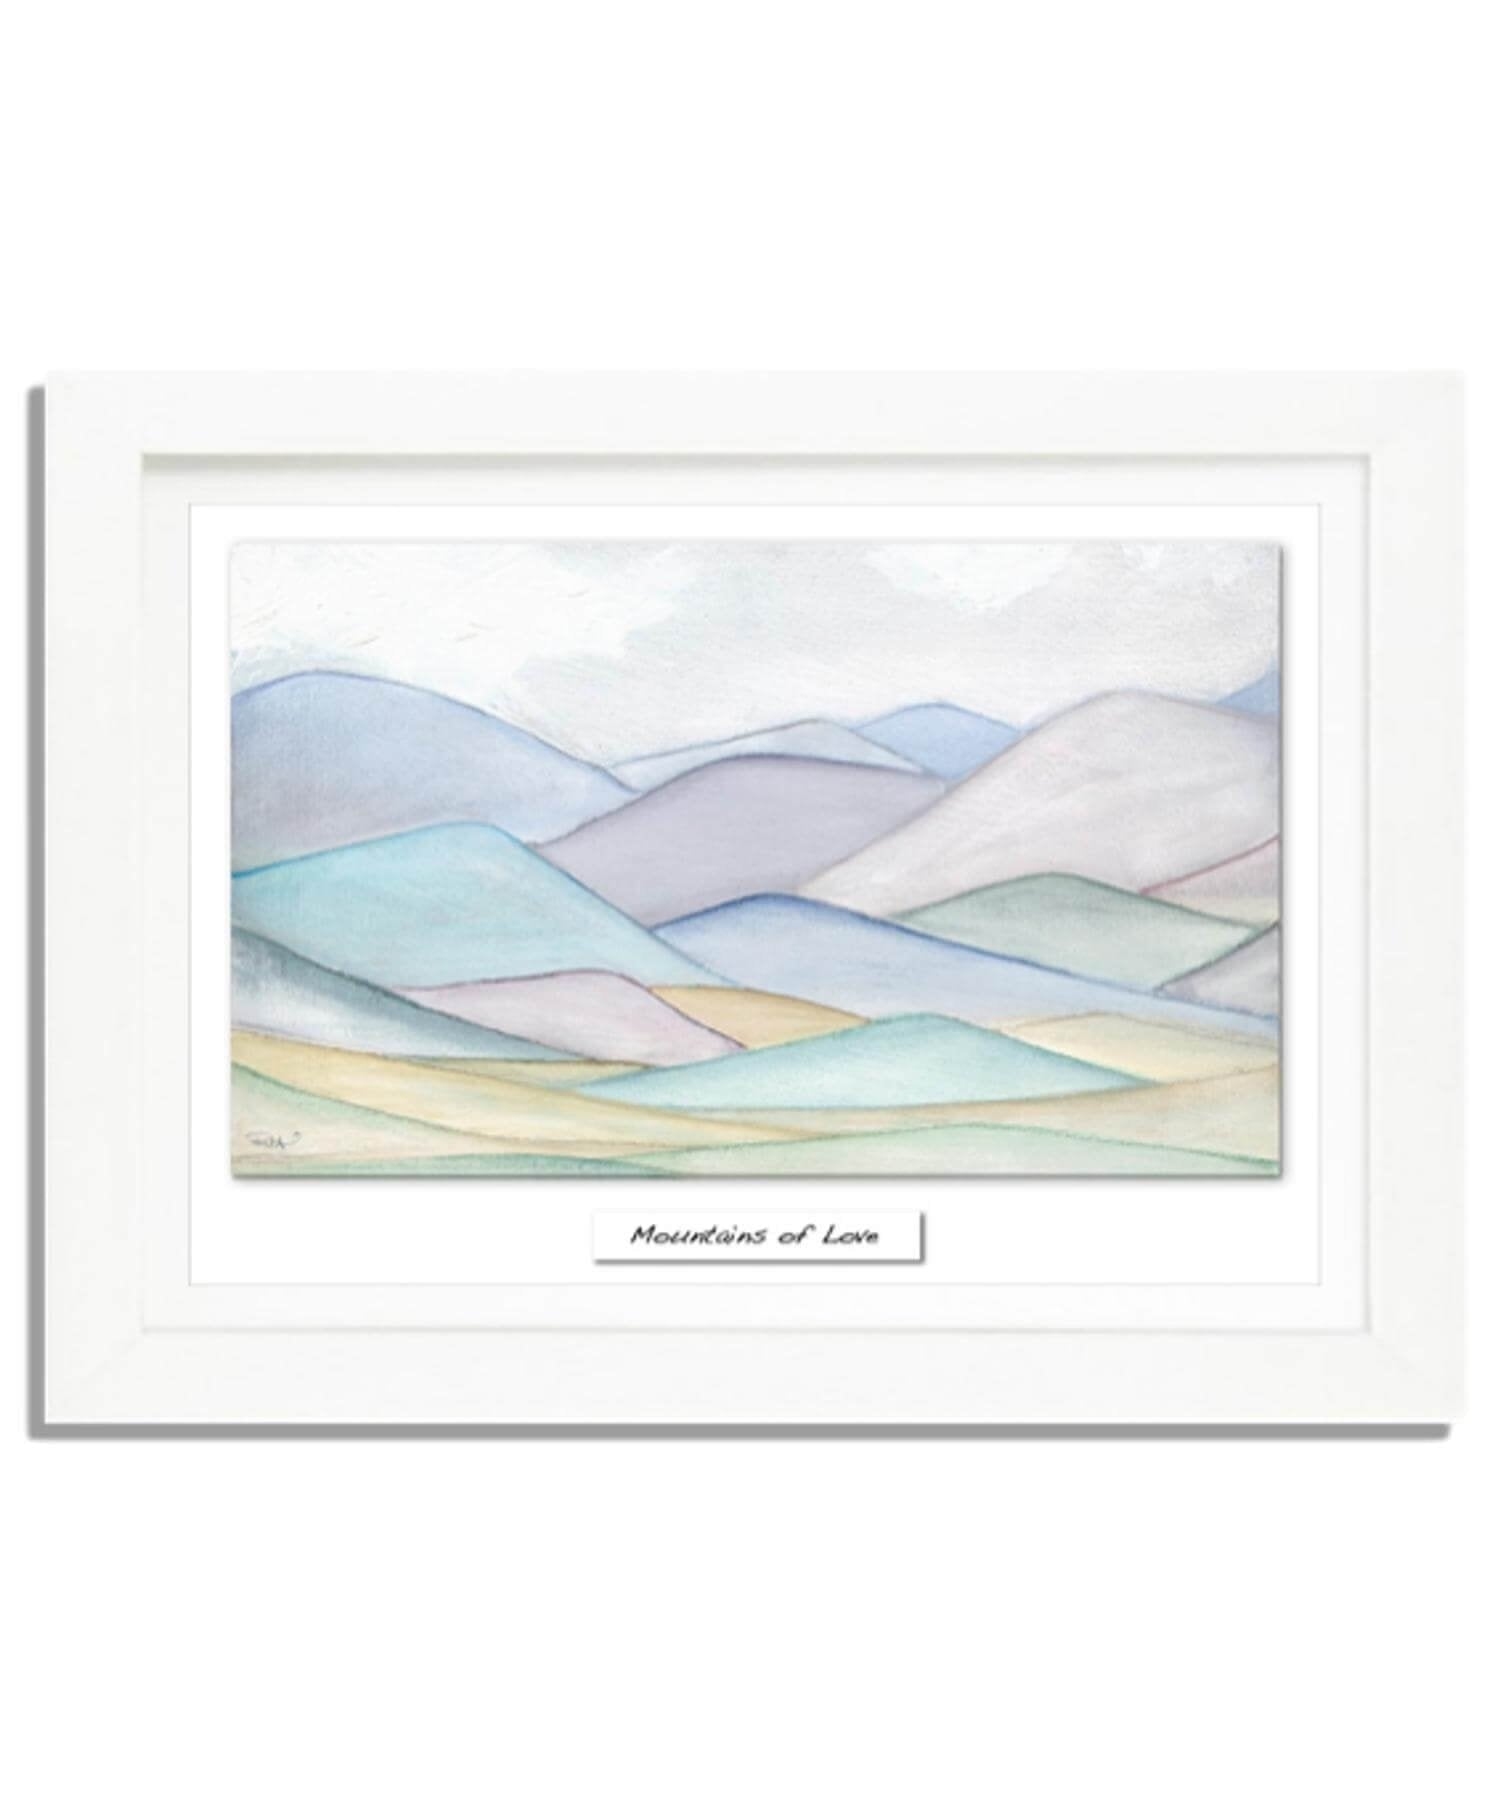 Small Framed Print - Mountains of Love Rita Oates Wall Art Prints & Photography